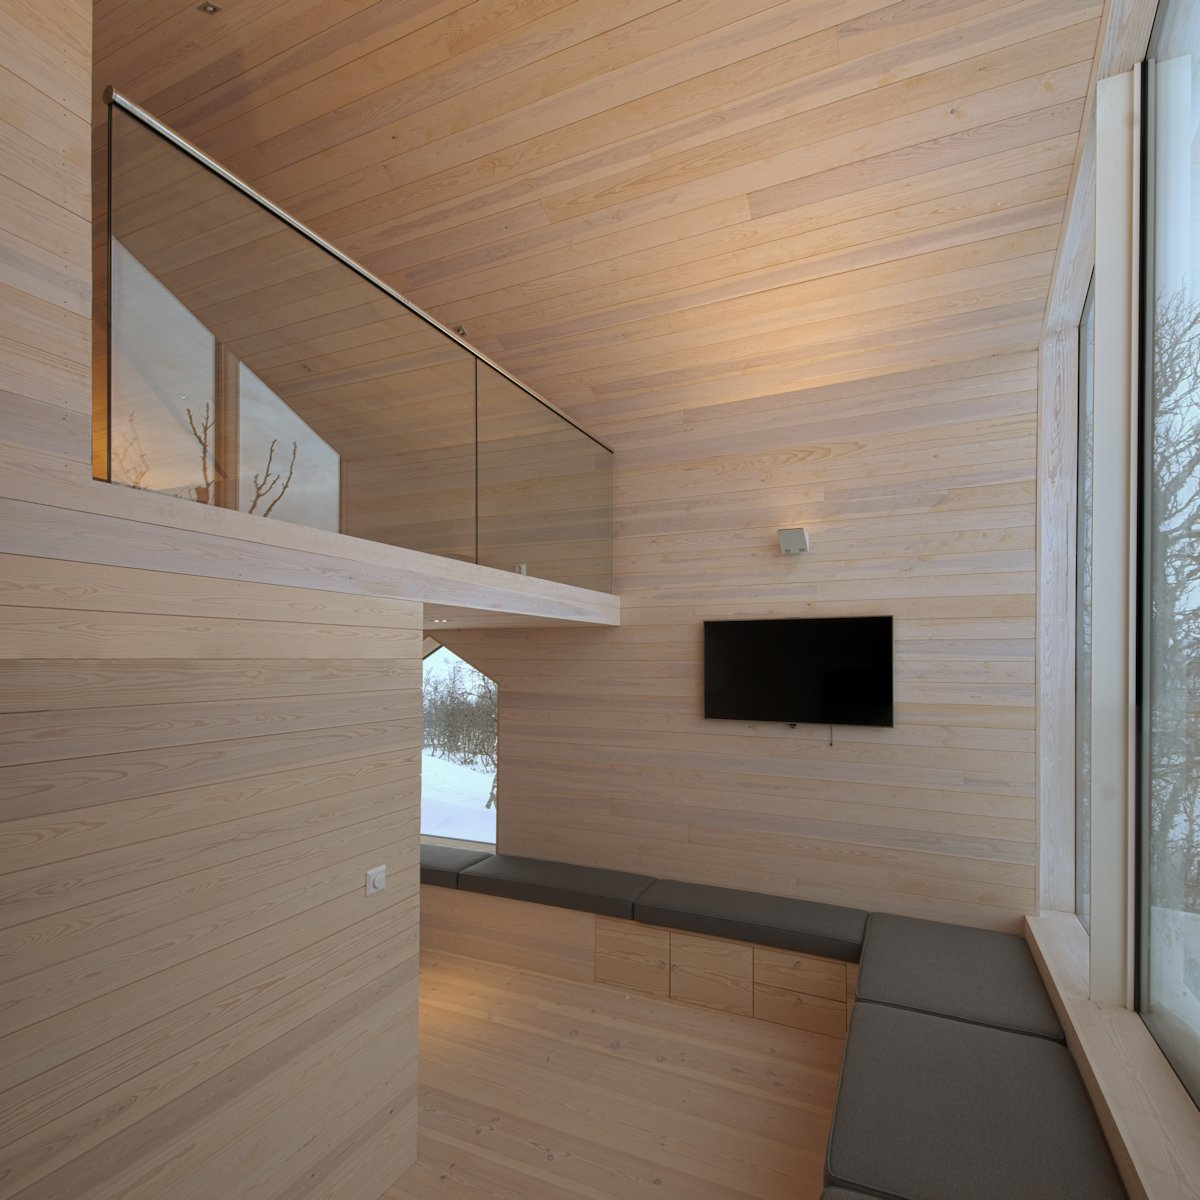 Living Space, Holiday Lodge in Havsdalen, Norway